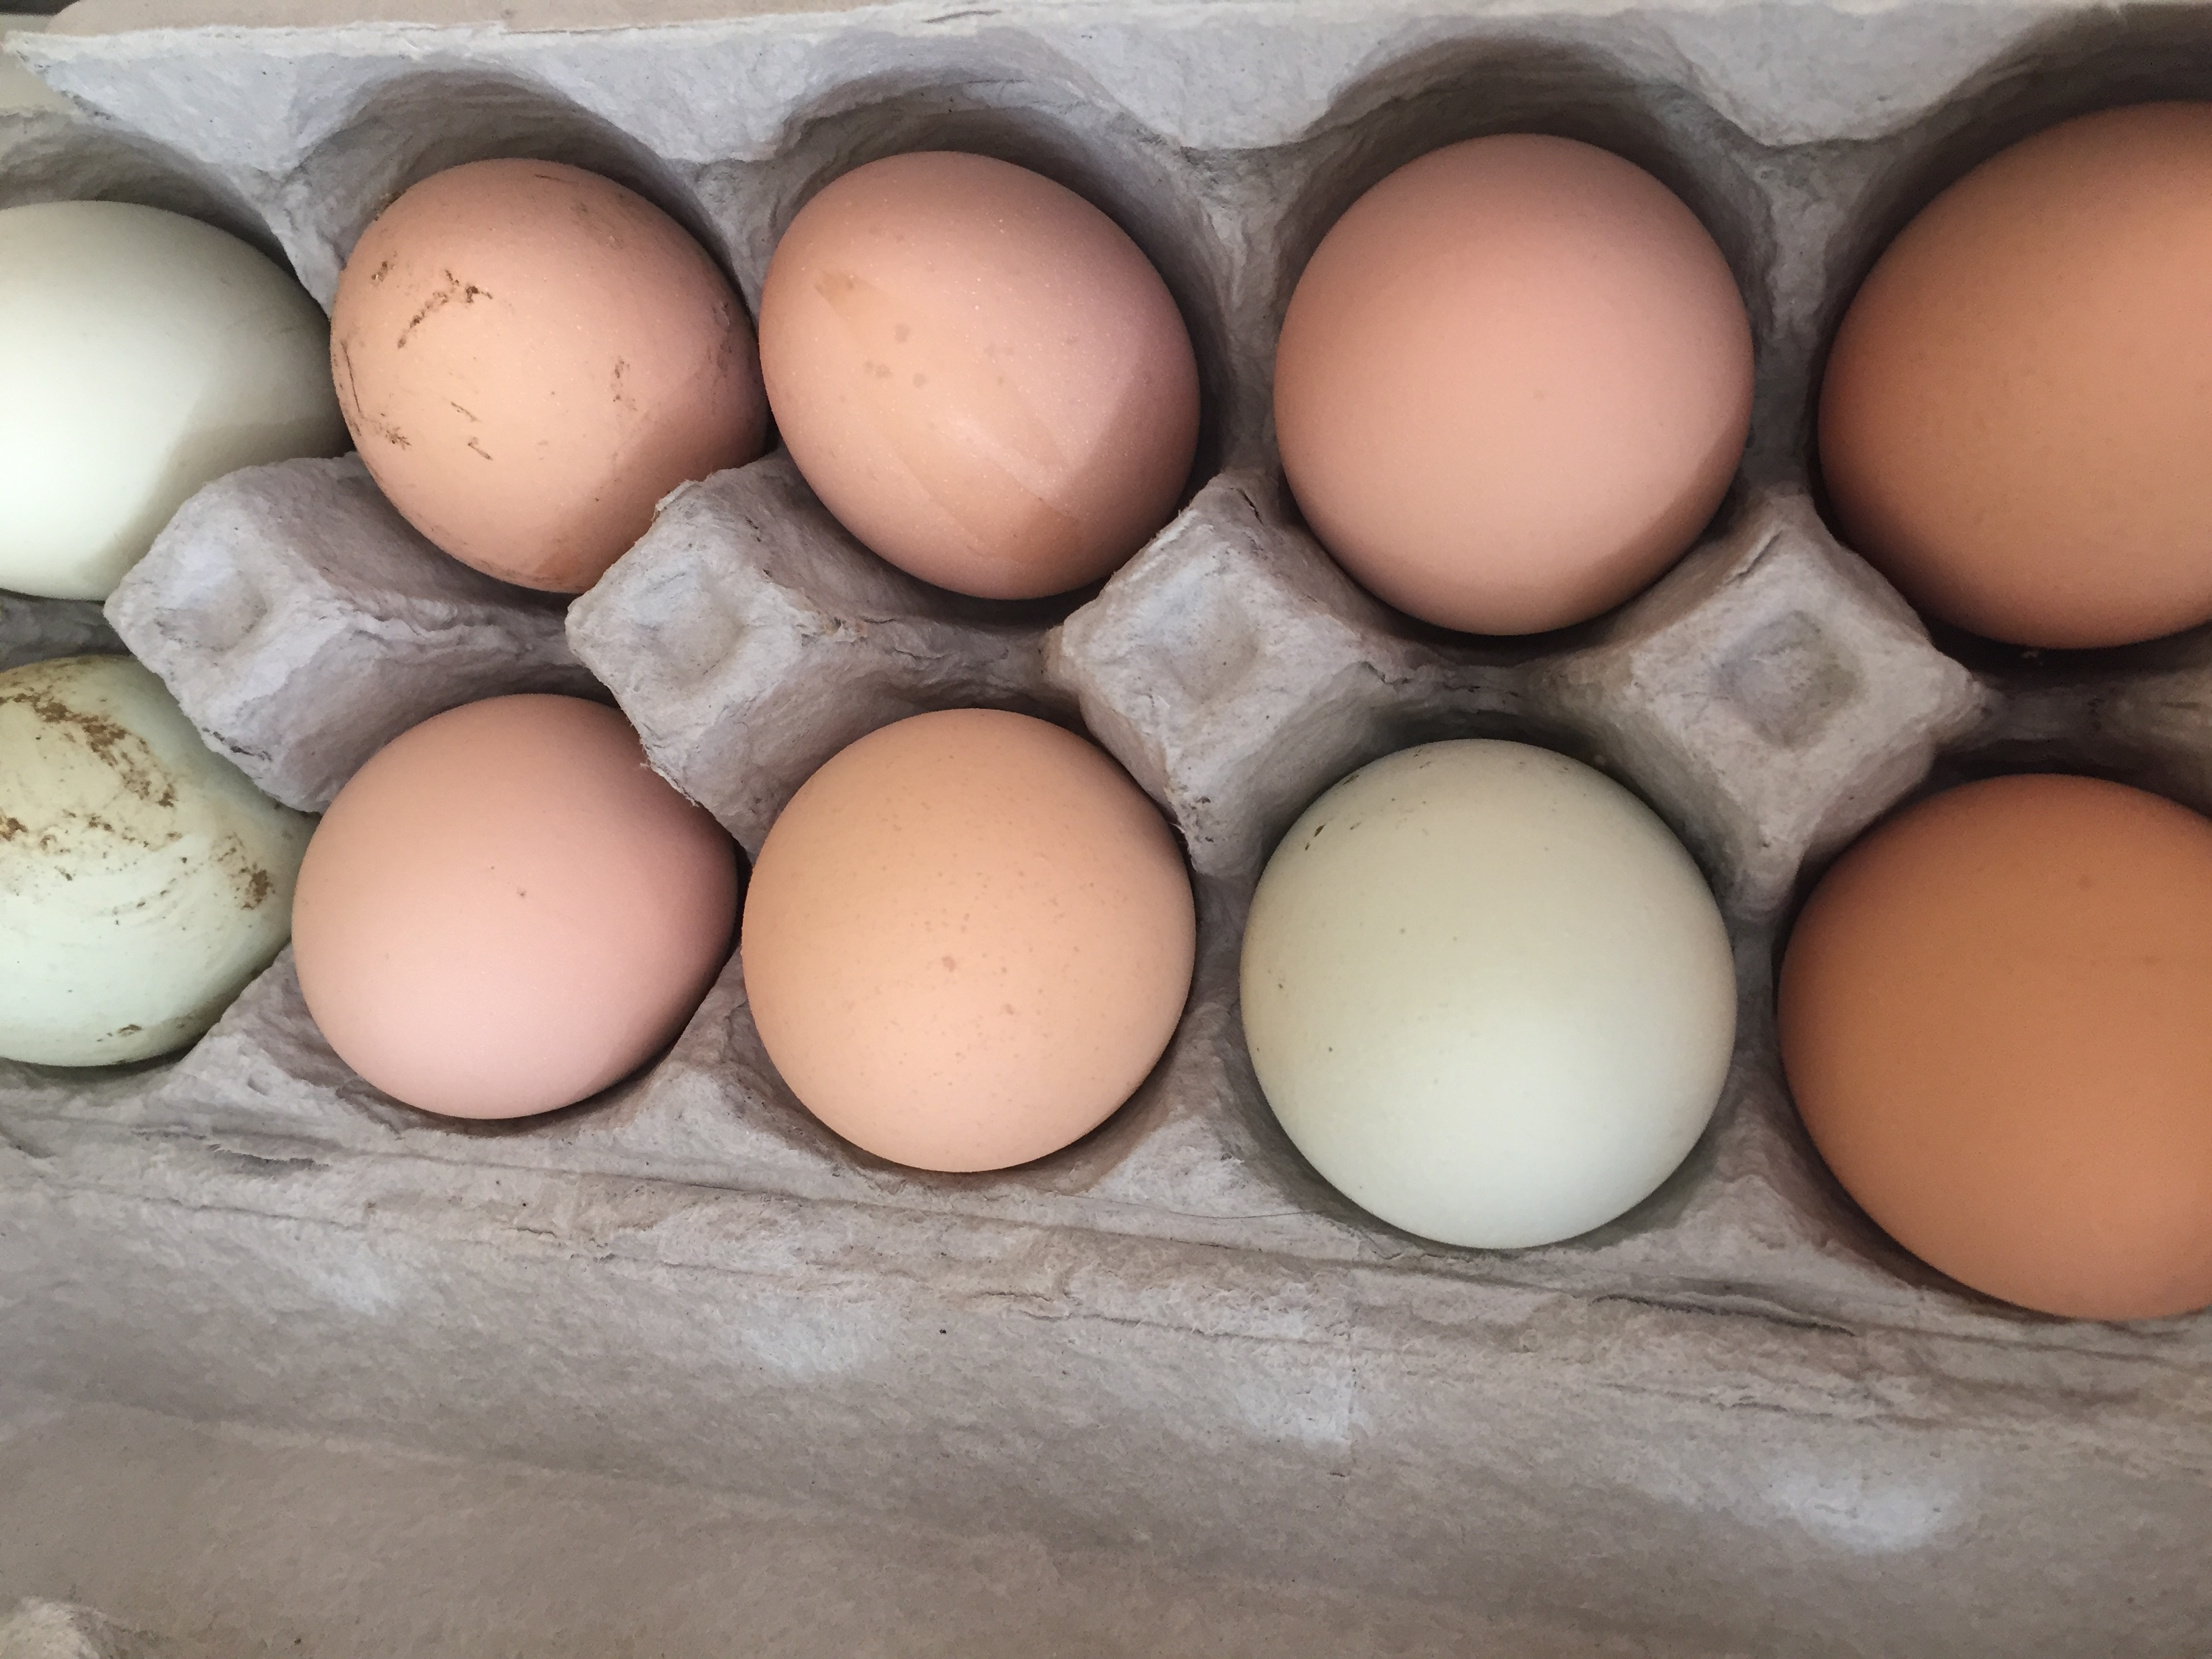 Real eggs from local farm come in different colored shells, too!